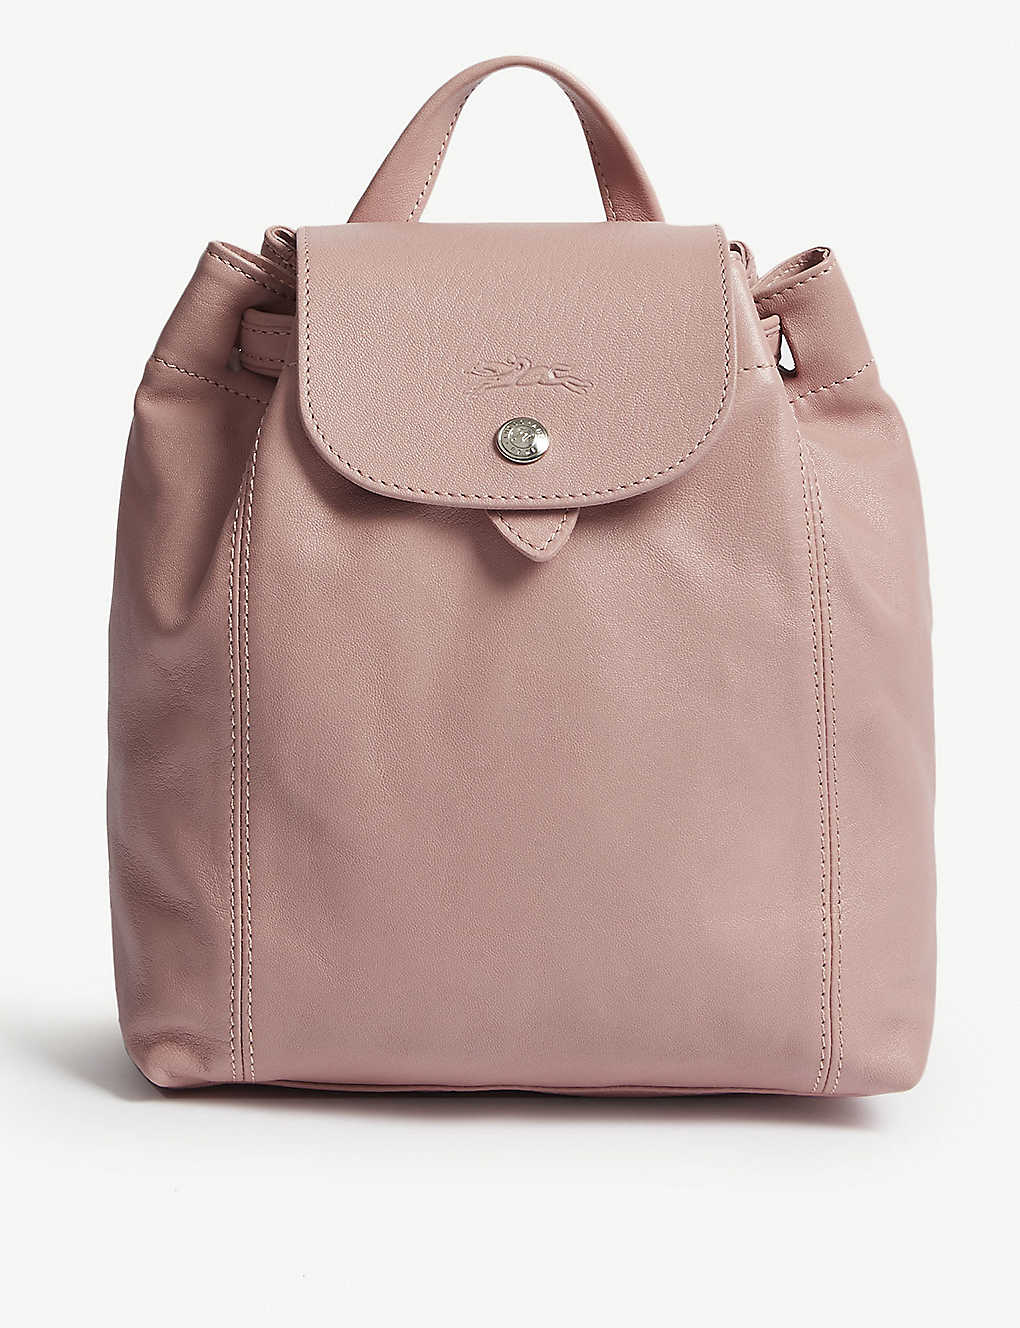 421820a1259 LONGCHAMP - Le Pliage Cuir extra-small leather backpack | Selfridges.com